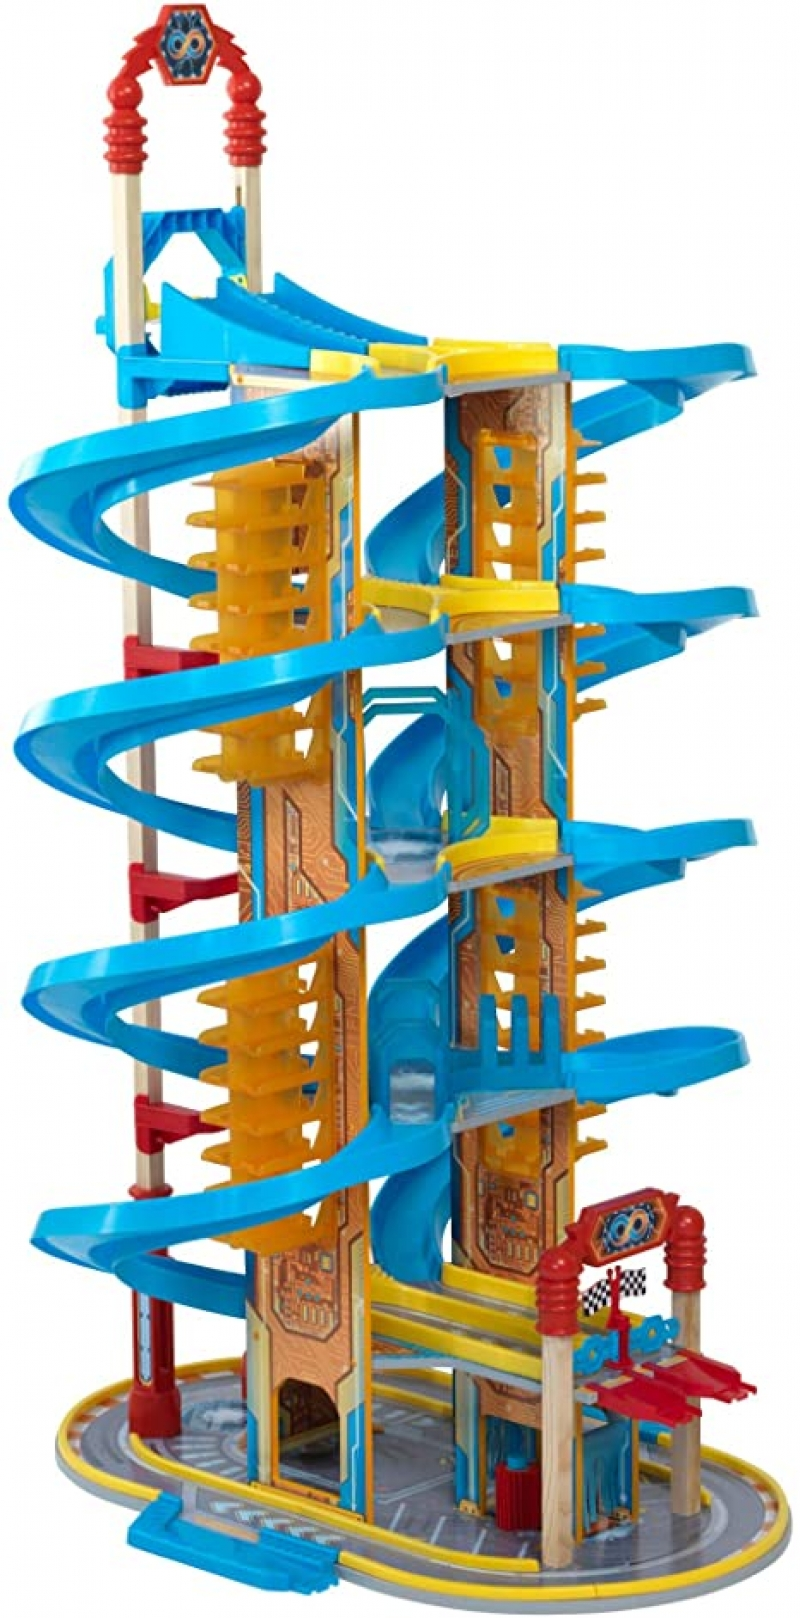 ihocon: KidKraft Super Vortex Racing Tower 超級螺旋賽車塔